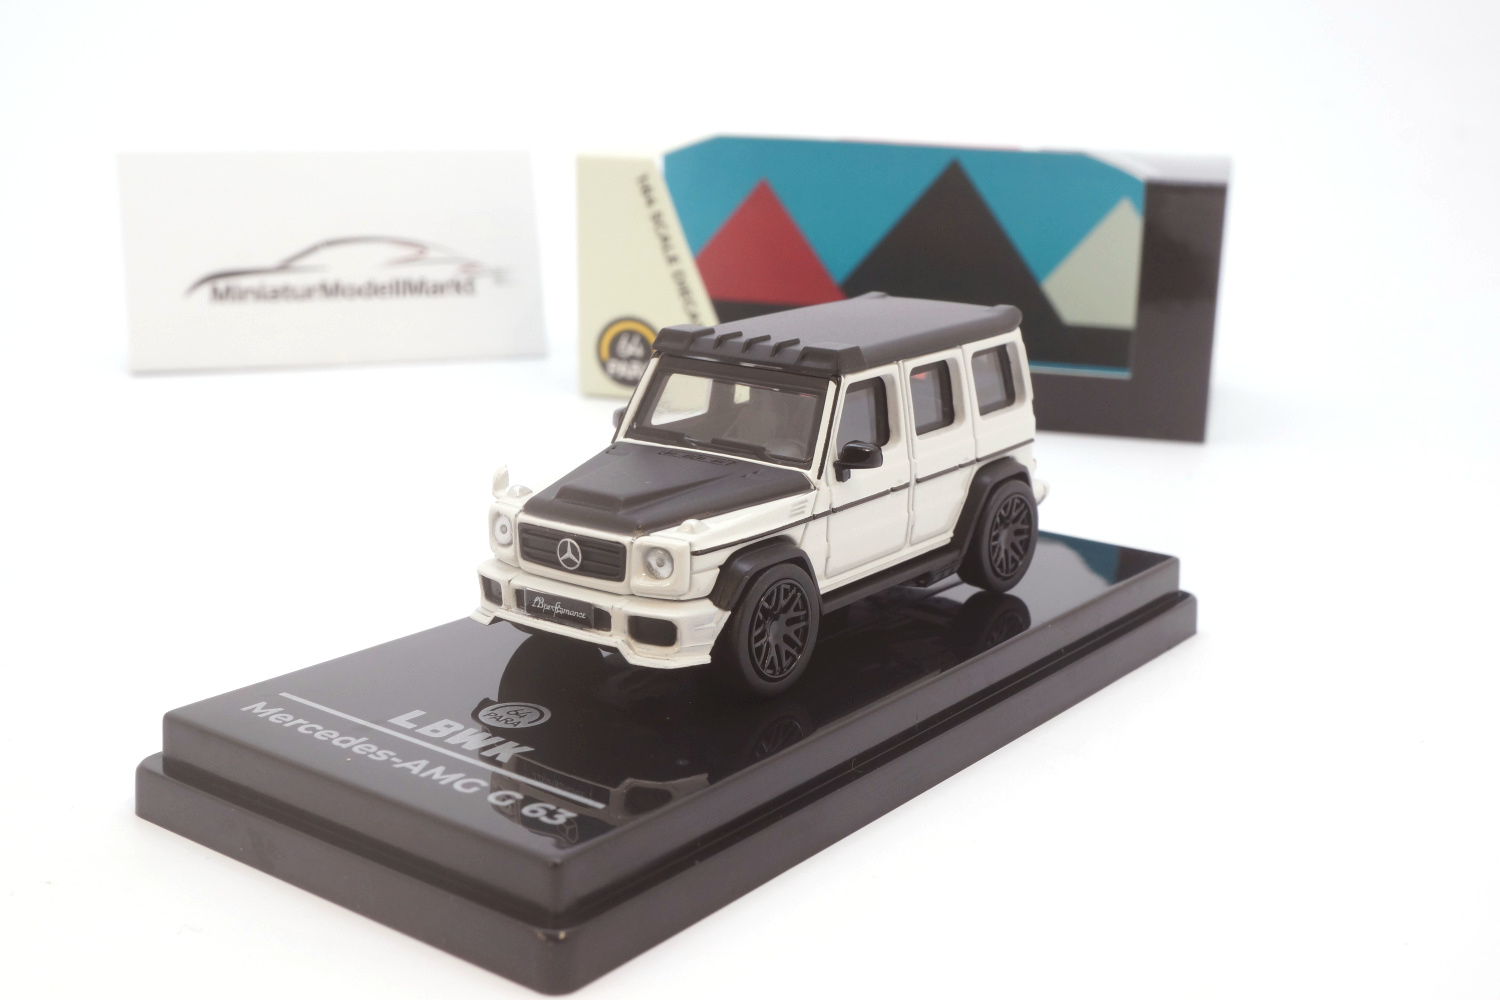 Paragon 55161 Liberty Walk AMG G63 - White 1:64